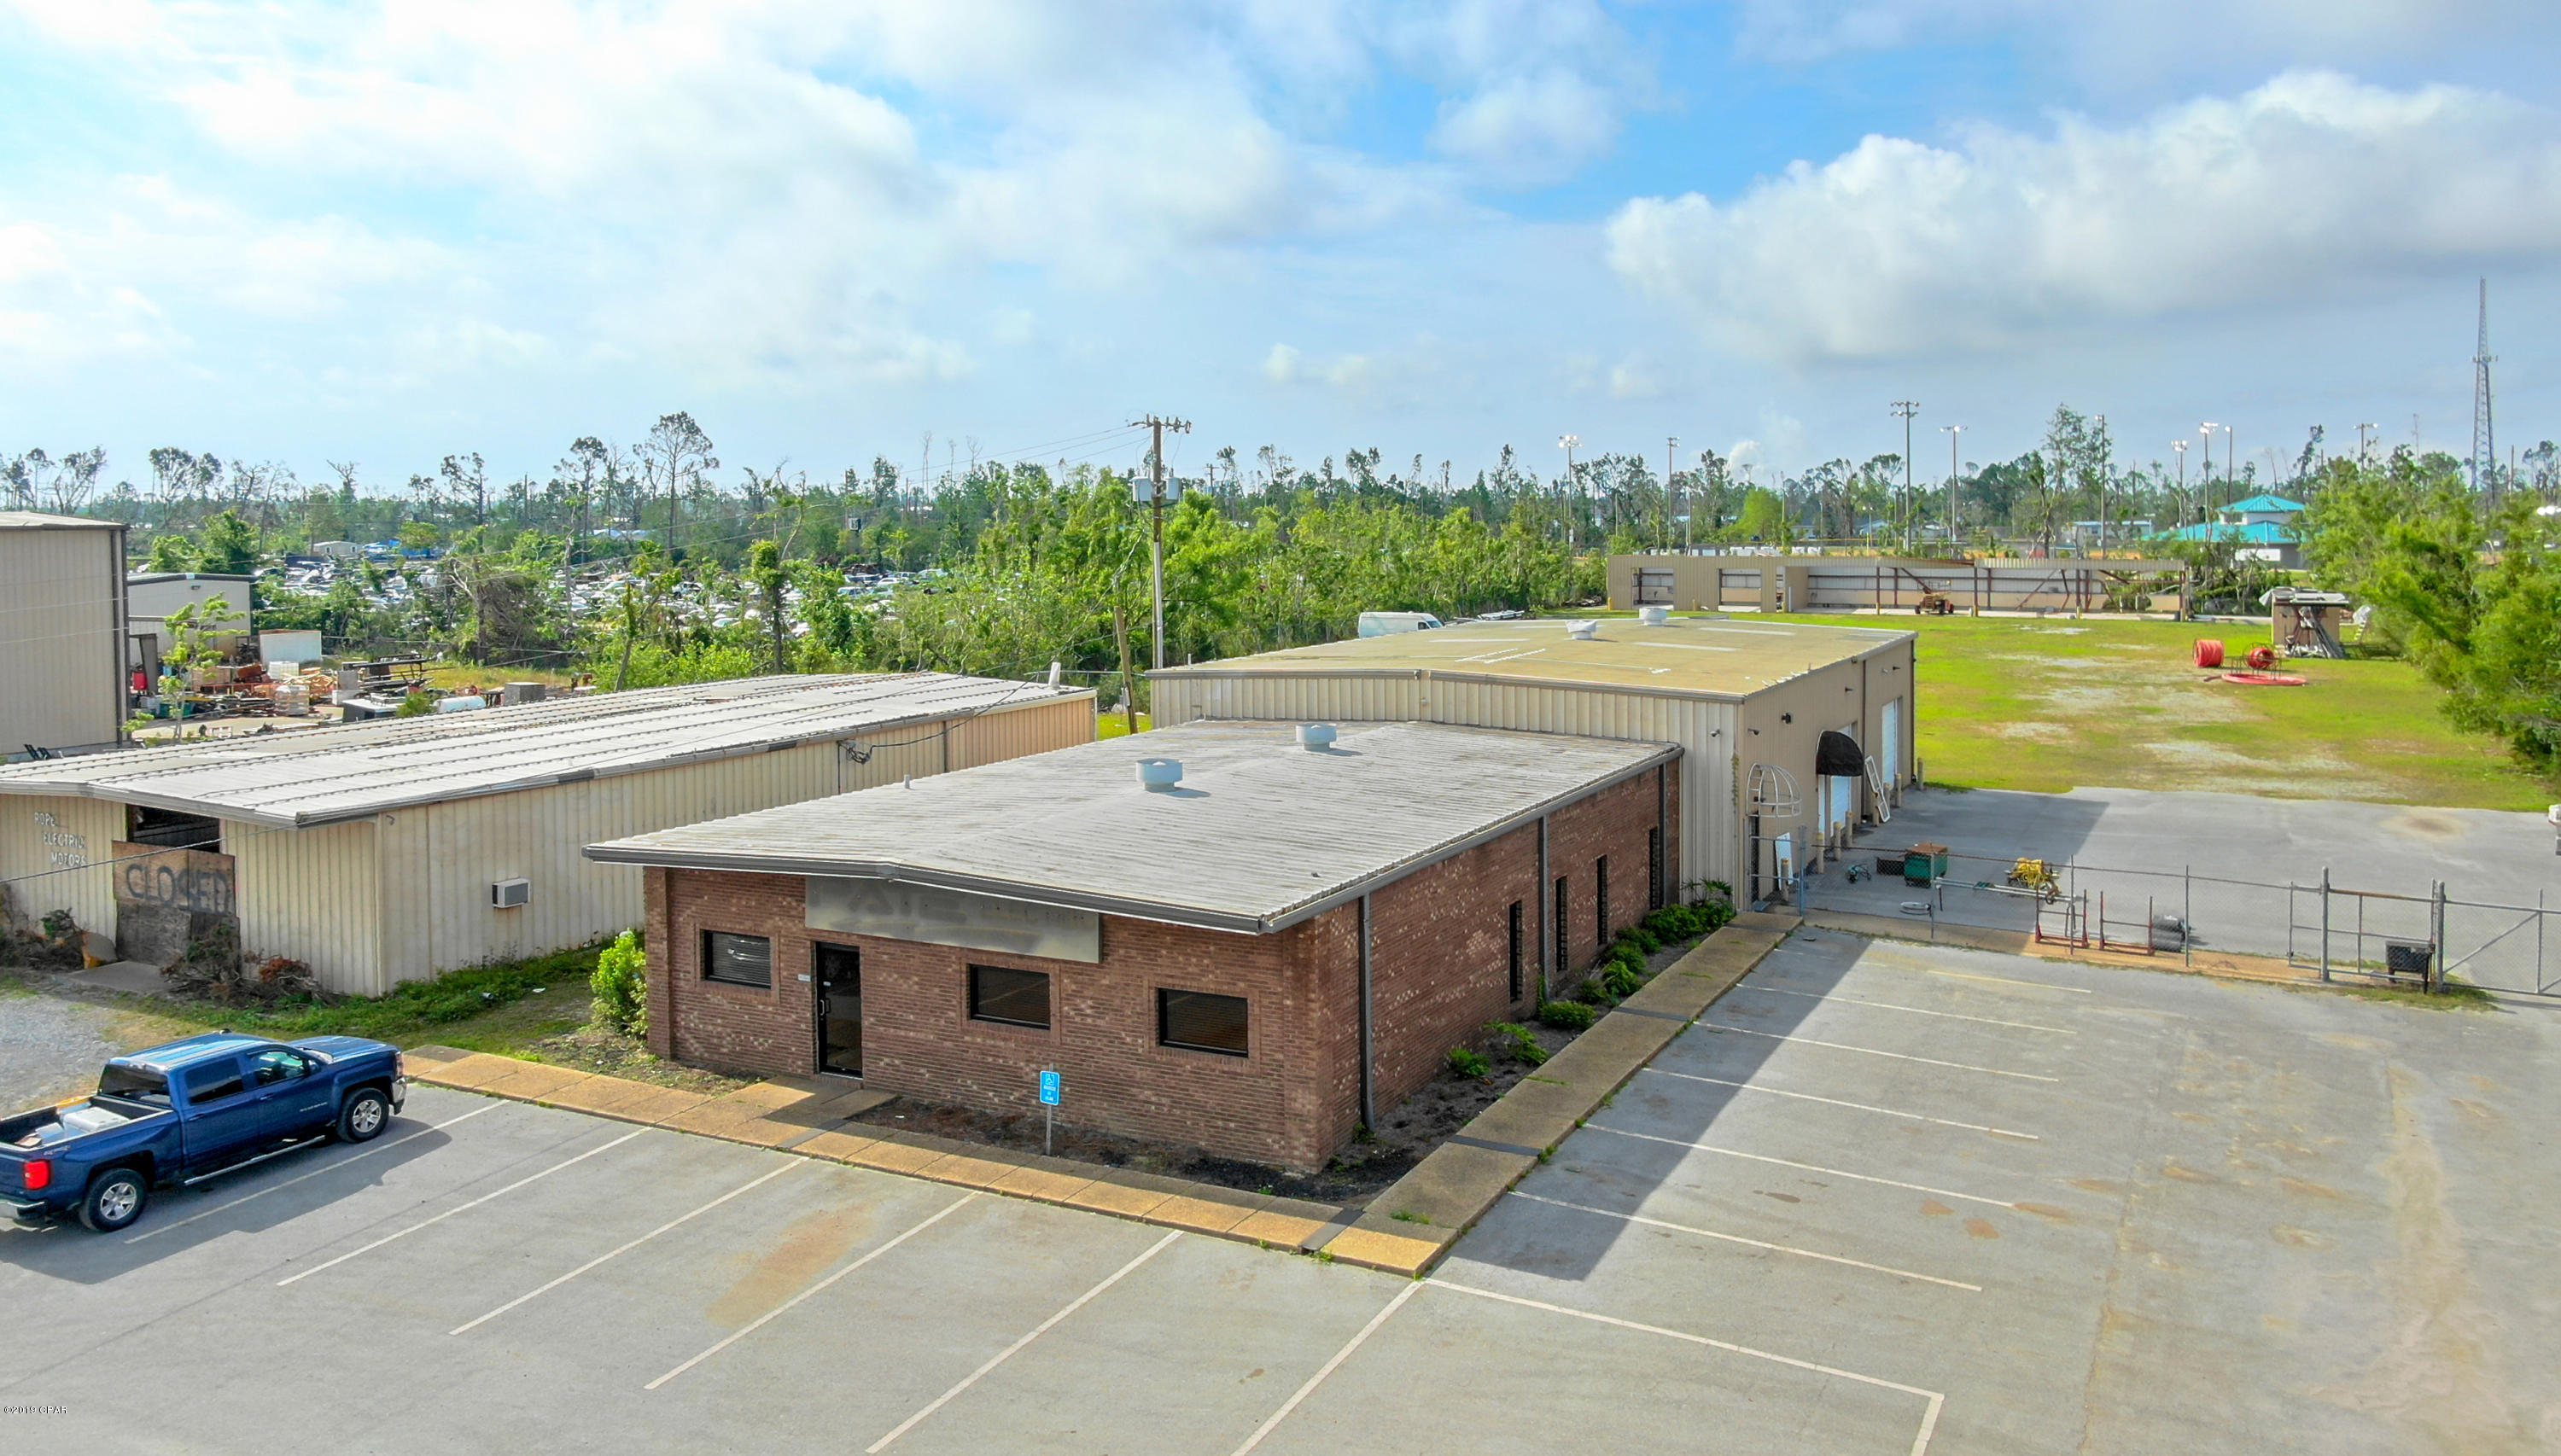 Photo of 2336 Industrial Drive Panama City FL 32405